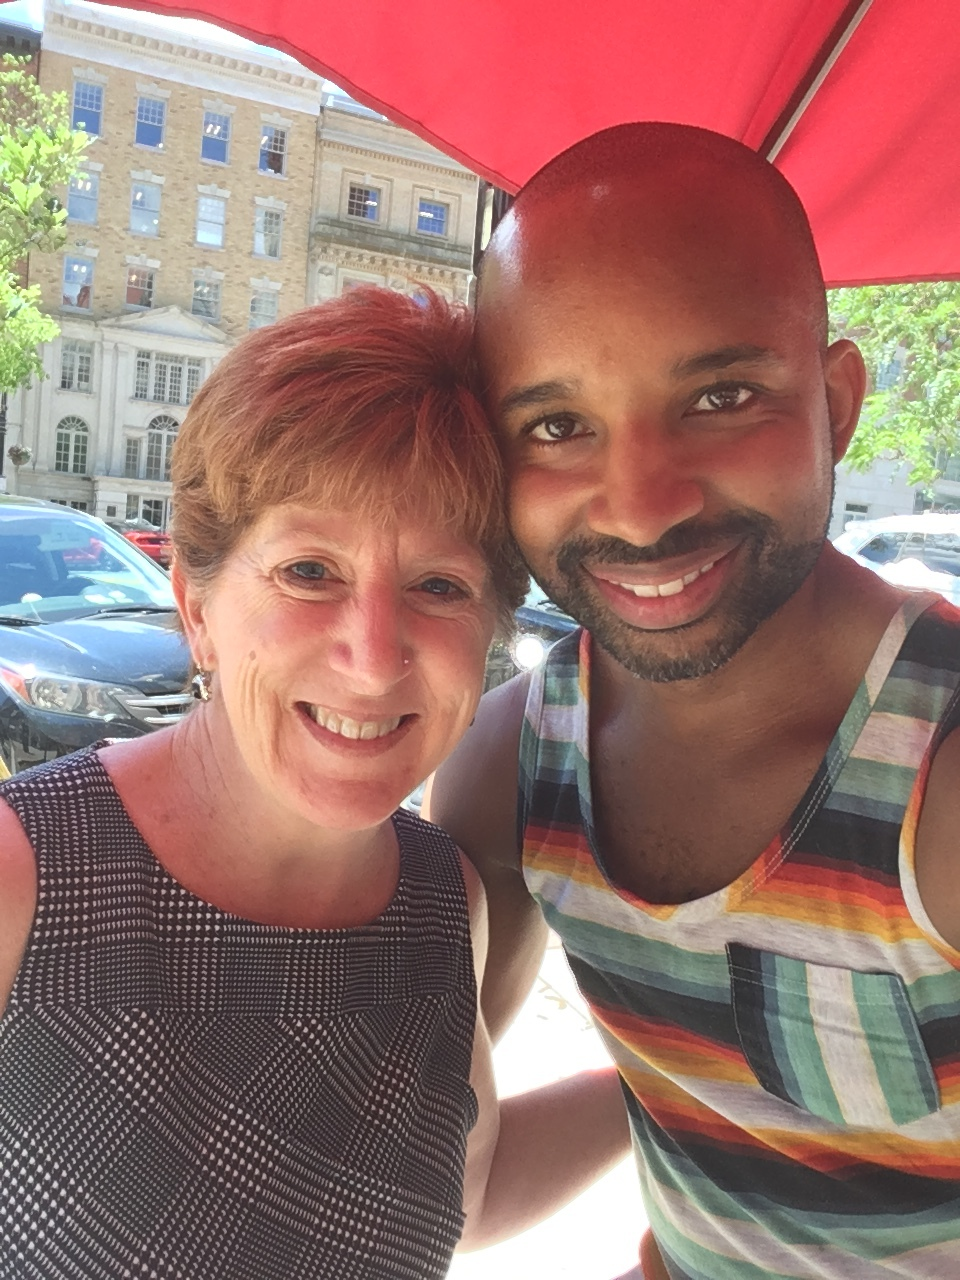 Me with Kathy Sheehan: Mayor of Albany, NY.